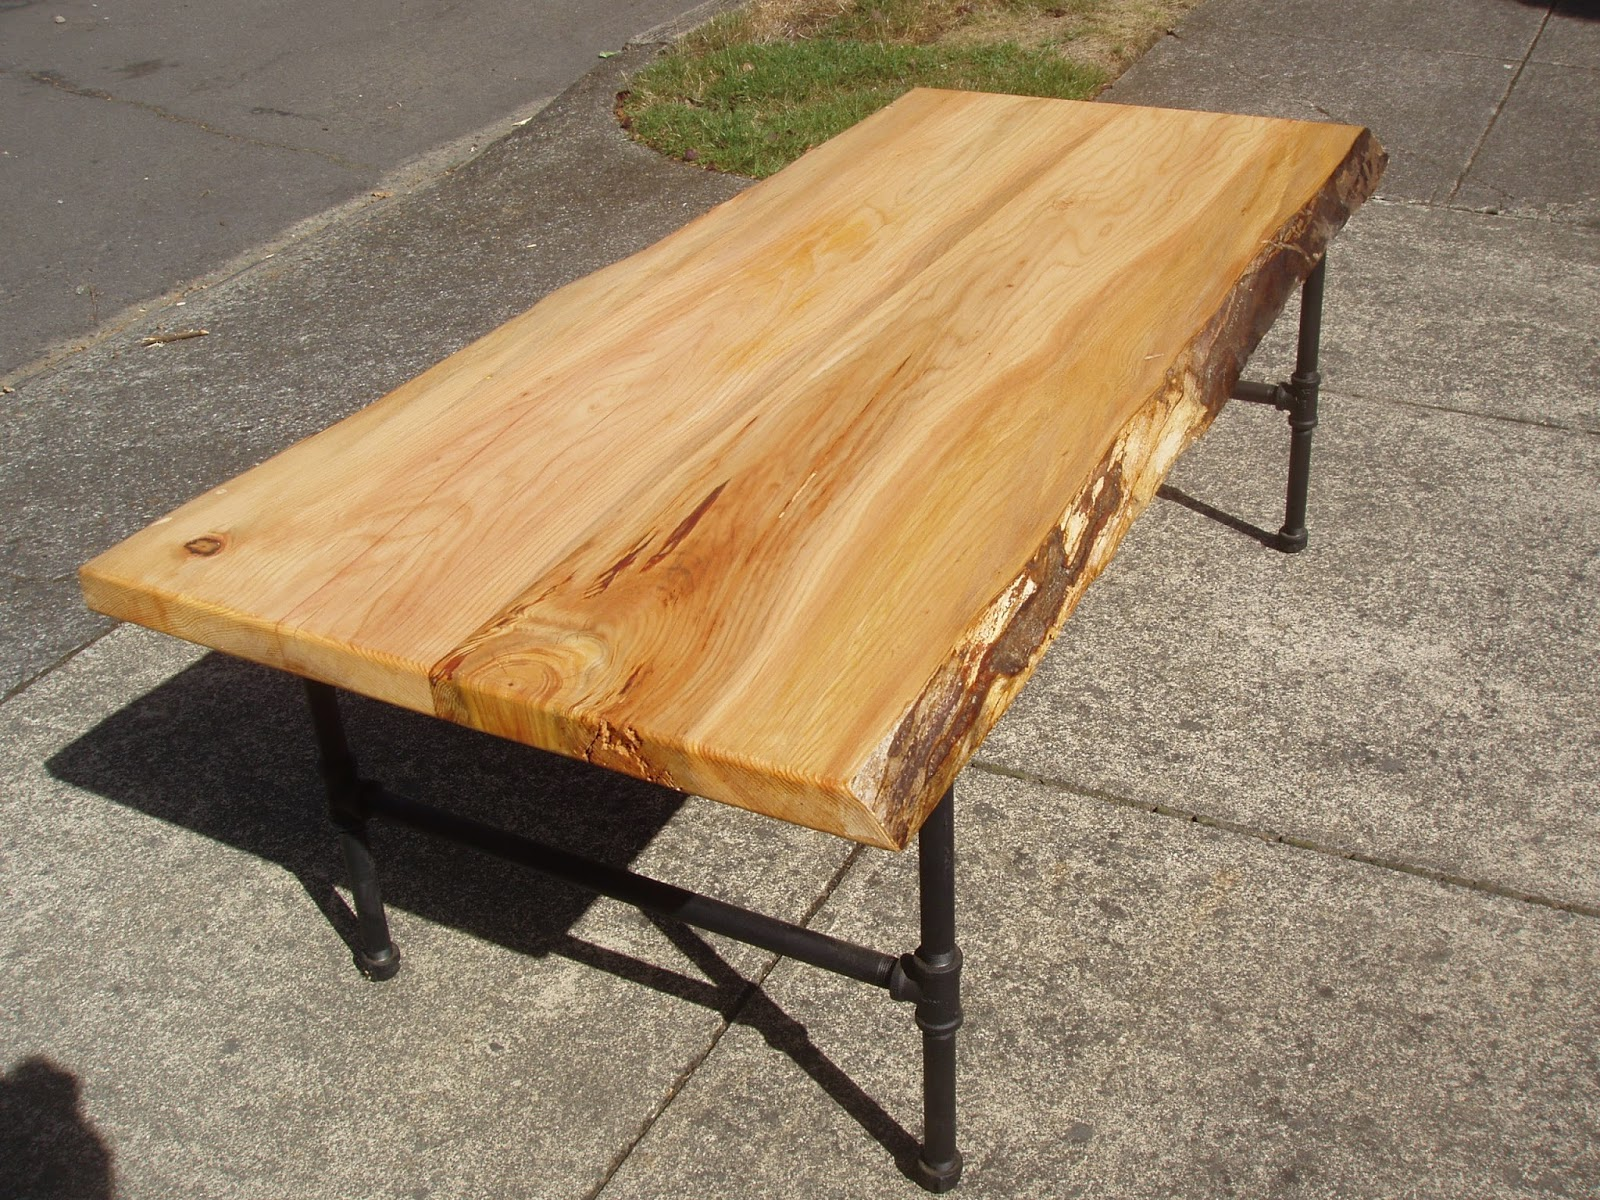 driftedge woodworking Live Edge Cedar Coffee Table with Steel